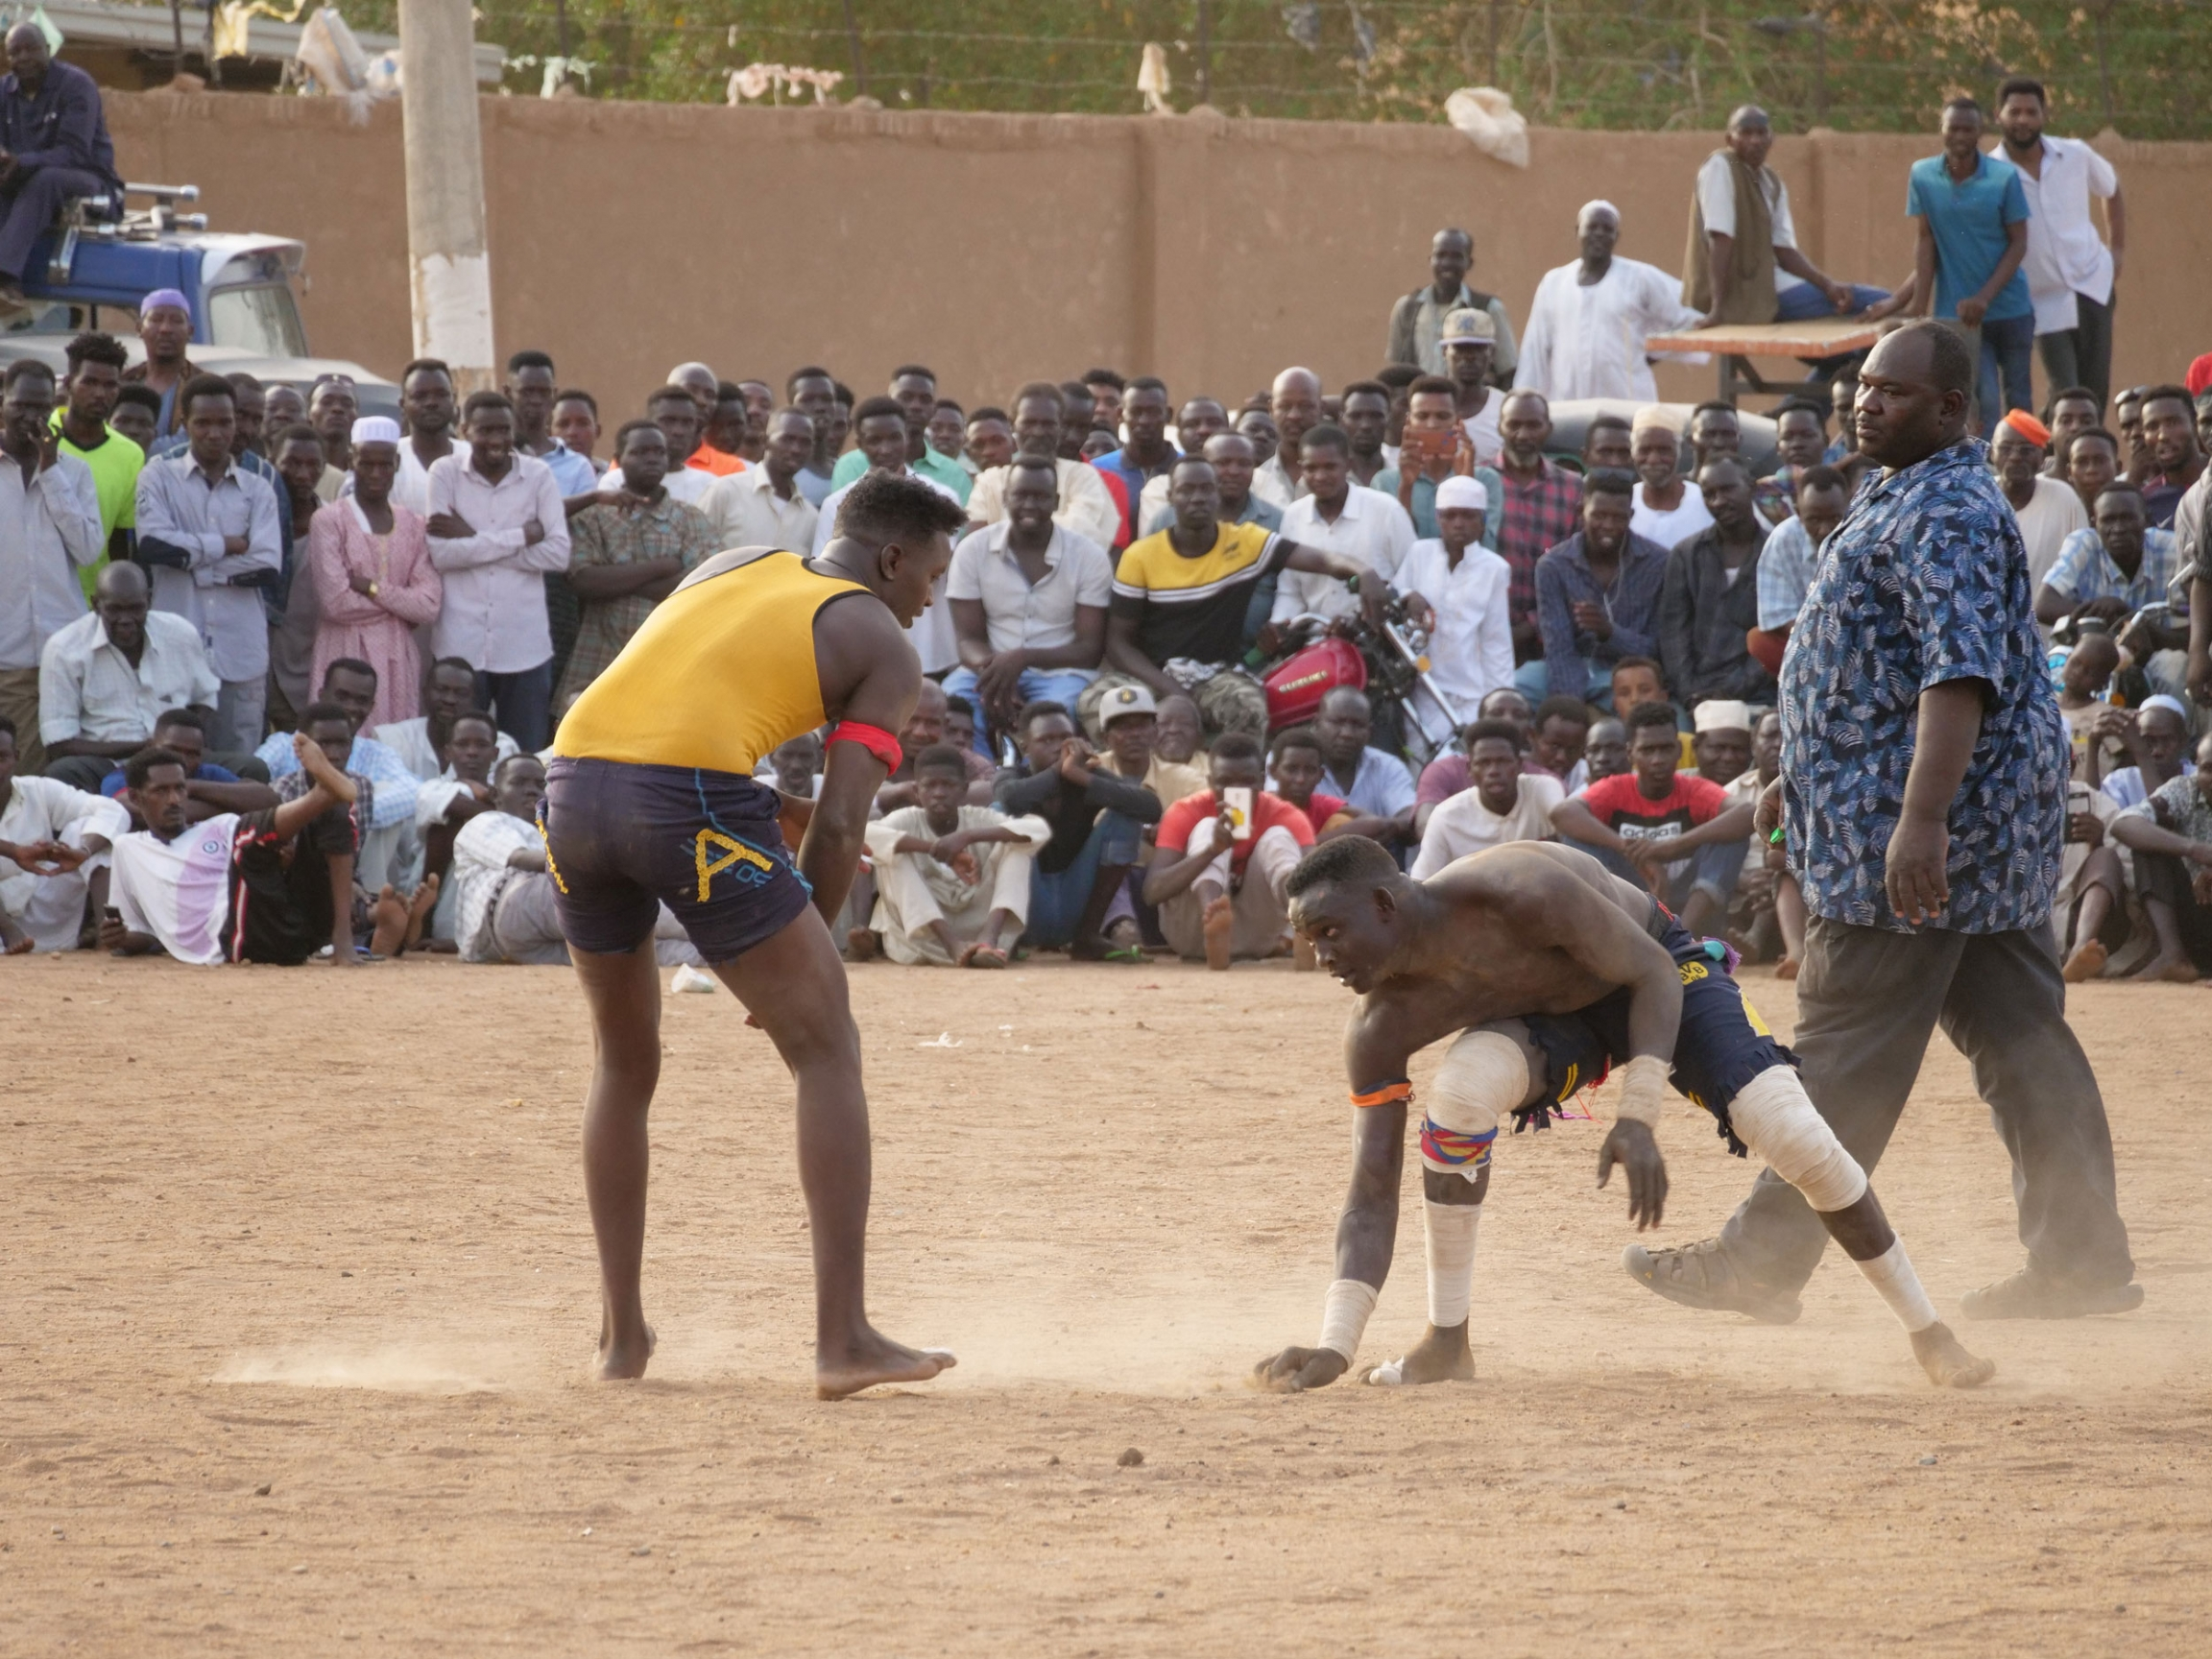 To men are shown wearing shorts and t-shirts while wrestling in a sandy courtyard.